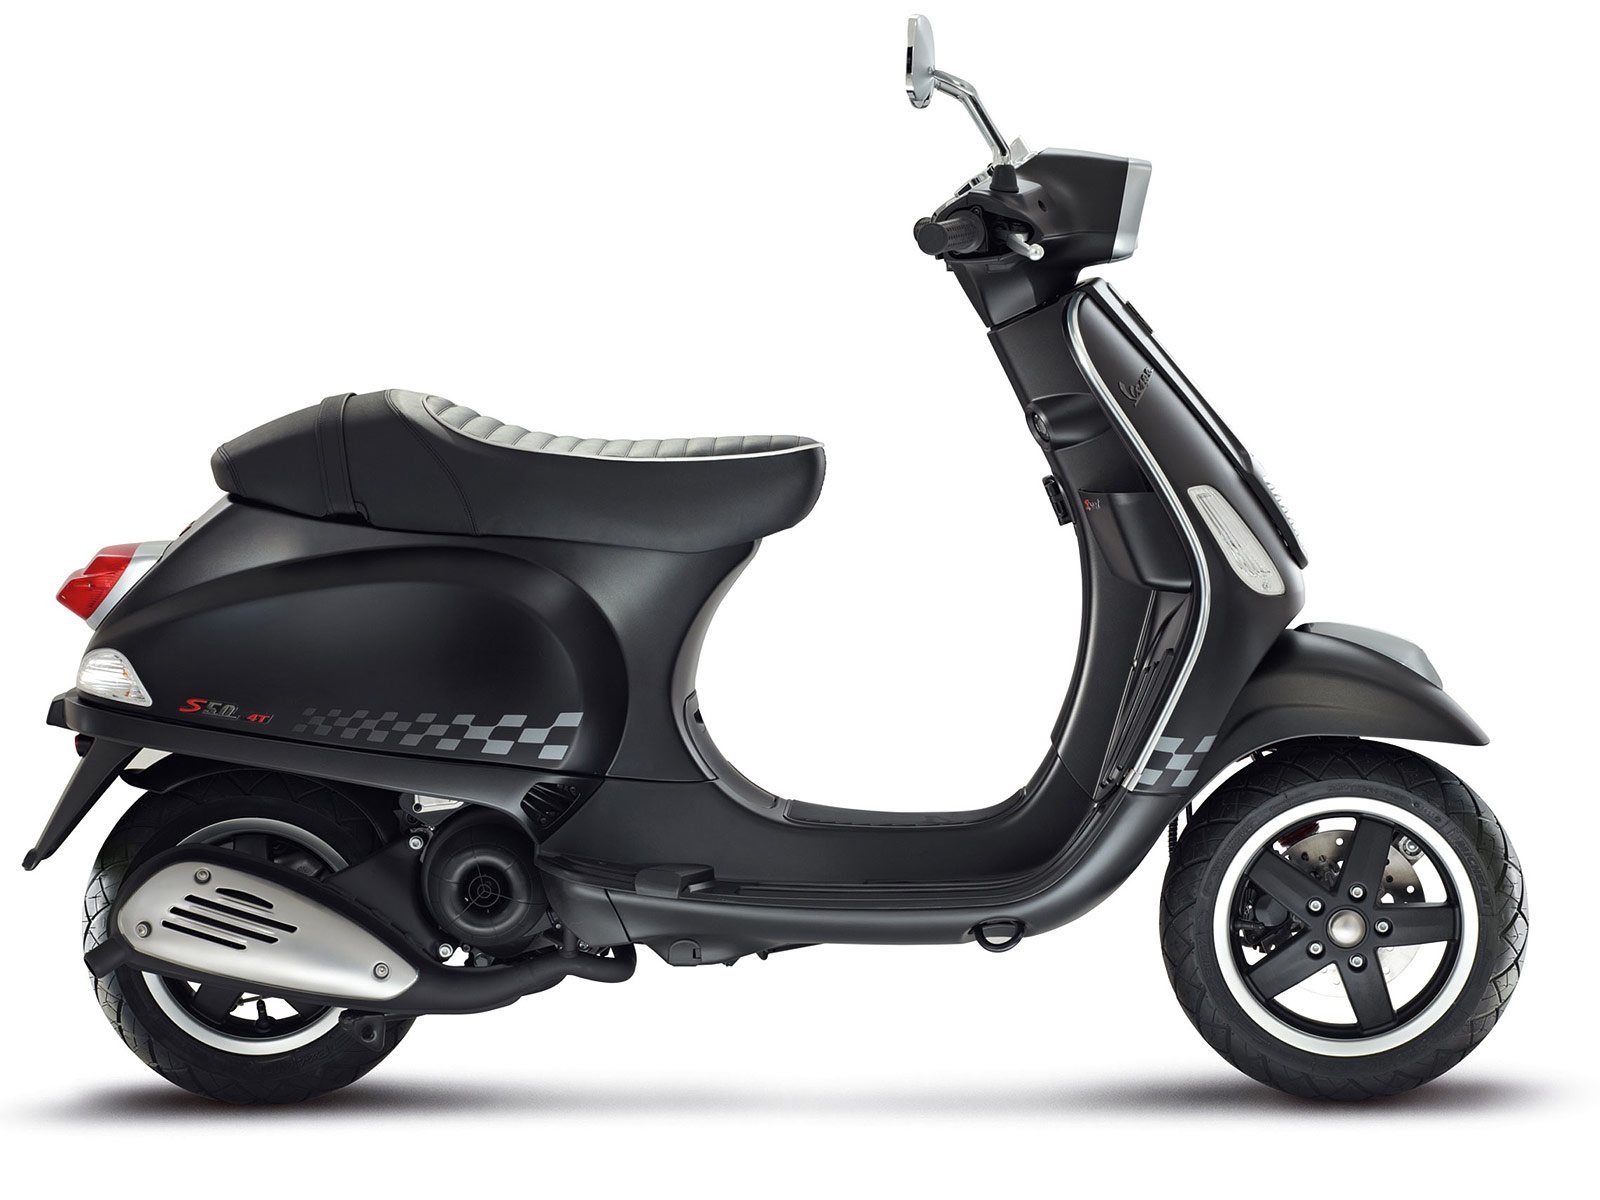 2013 vespa s50 super sport se scooter pictures specifications. Black Bedroom Furniture Sets. Home Design Ideas